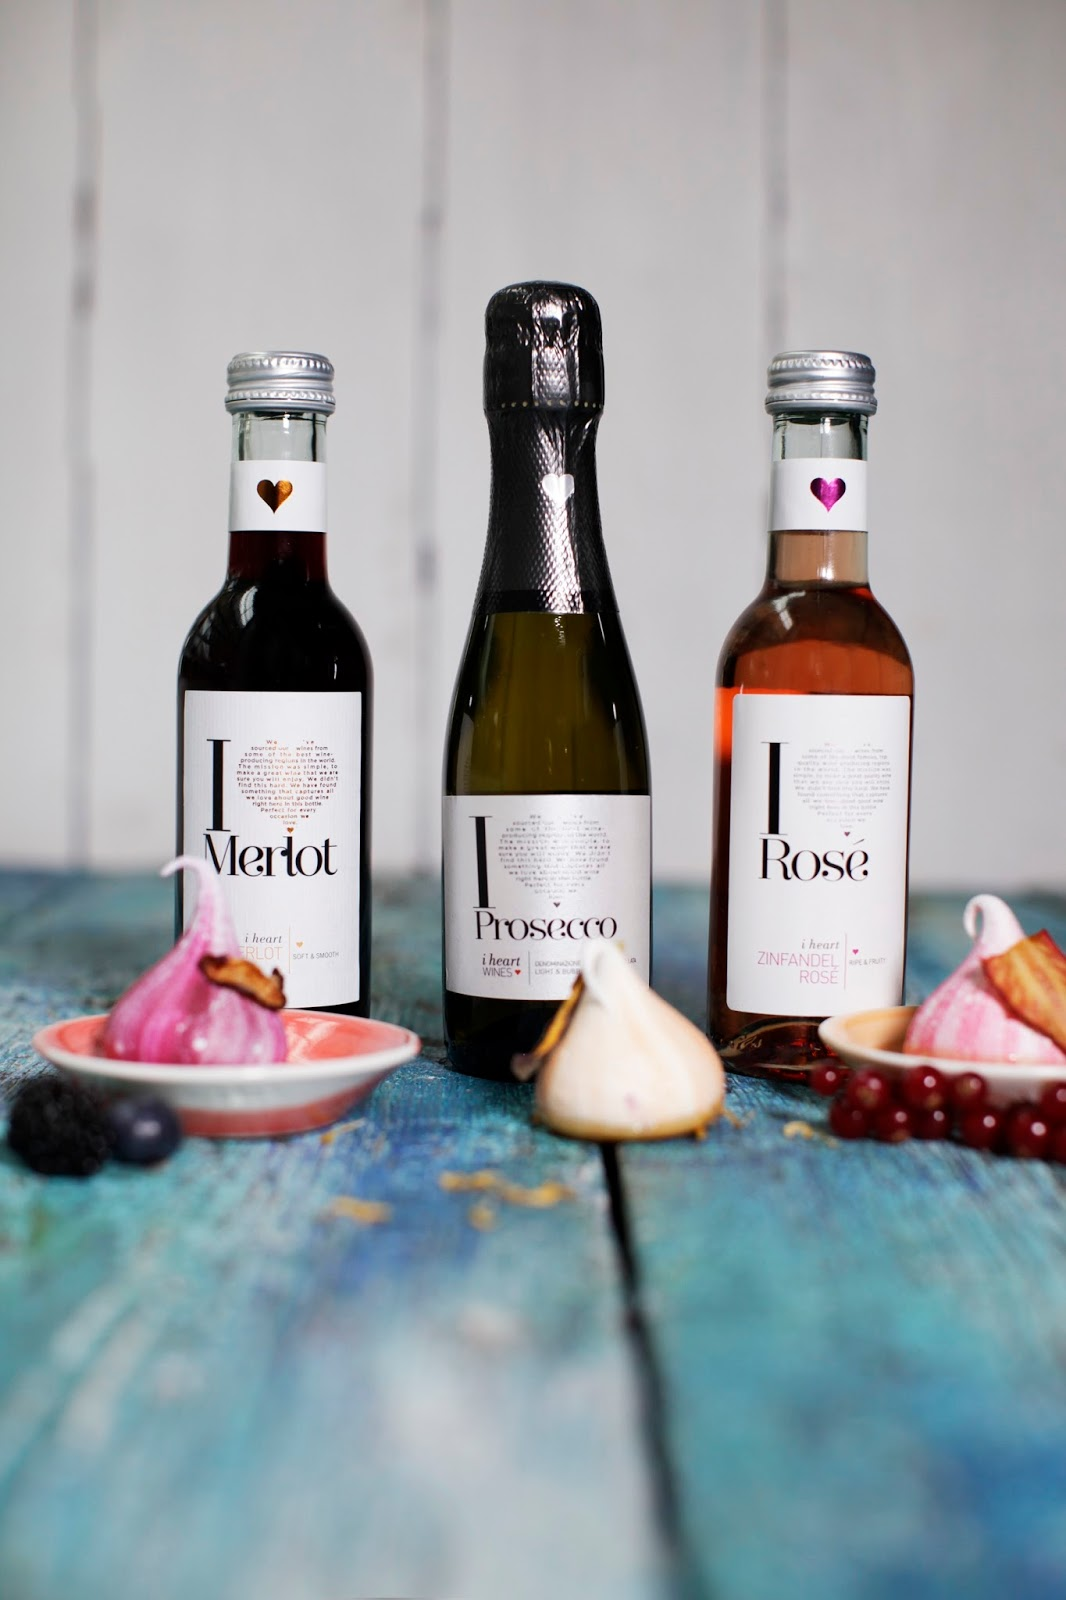 How To Make I Heart Prosecco Merlot Wine Infused Meringue